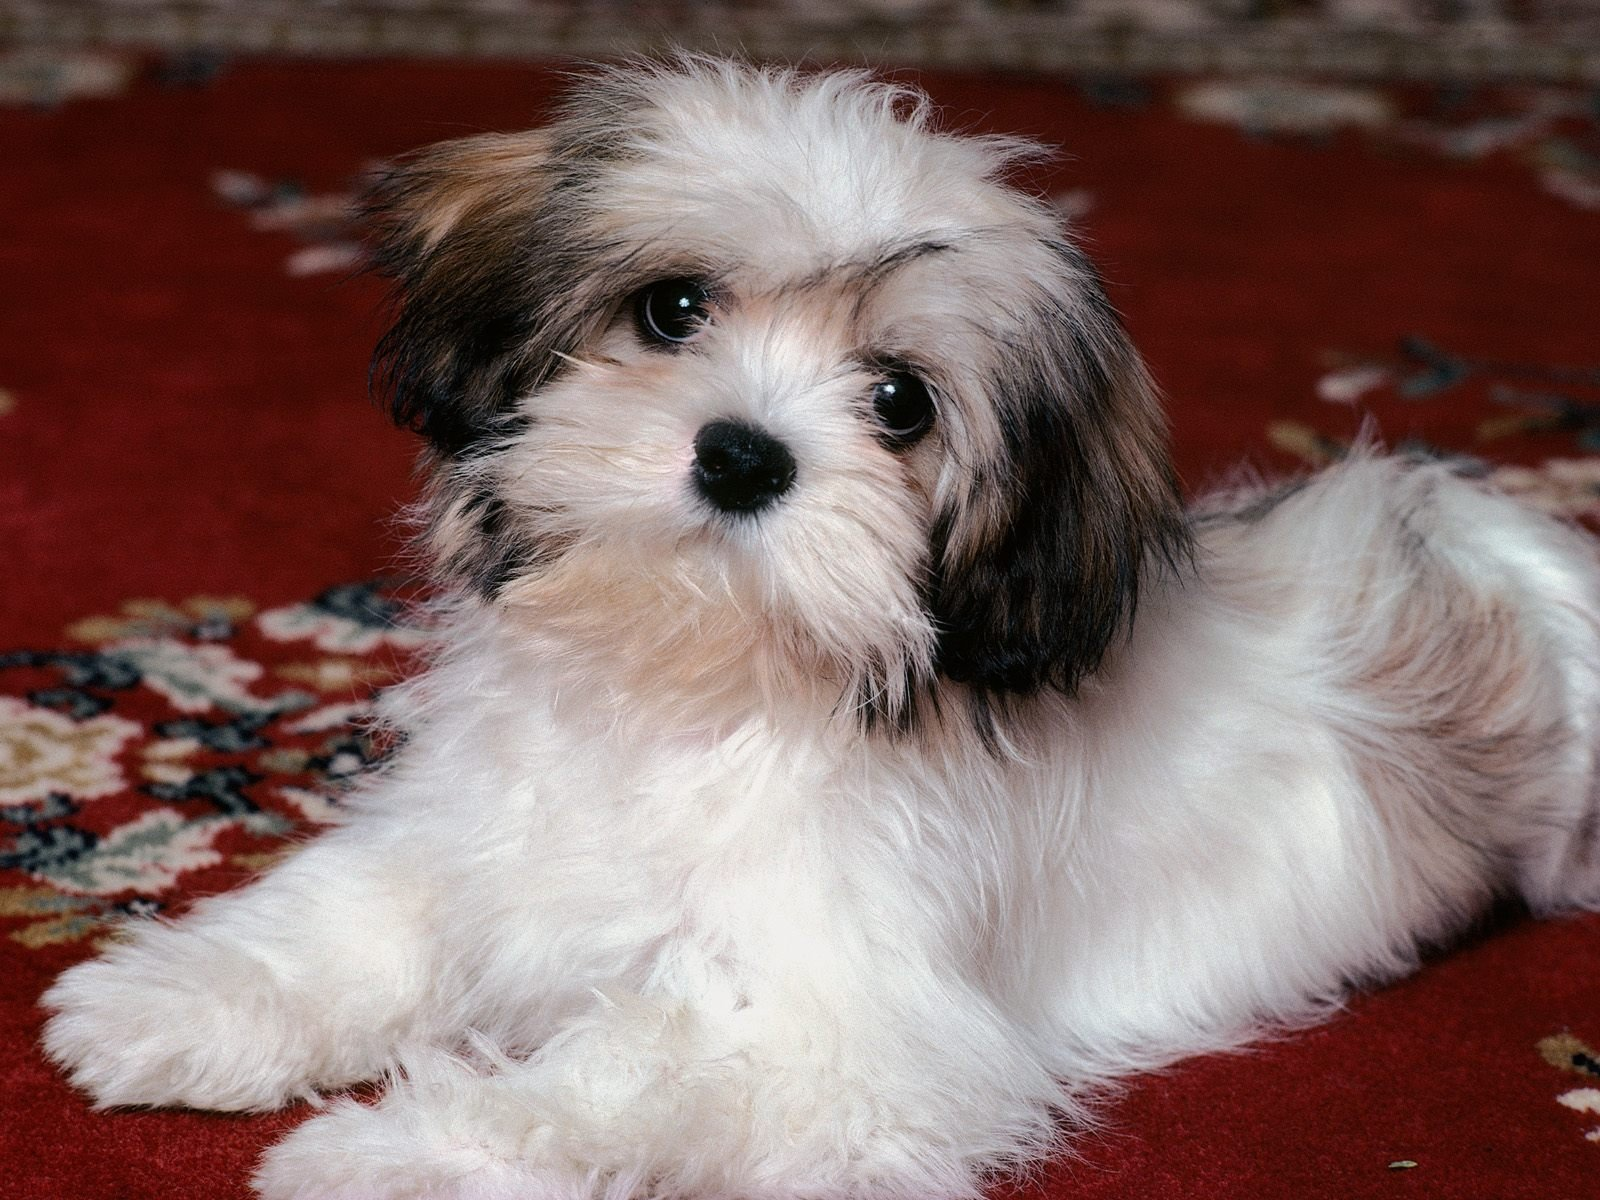 wallpapersfeedionetlhasa apso comments 96 esther dog wallpaper 1600x1200